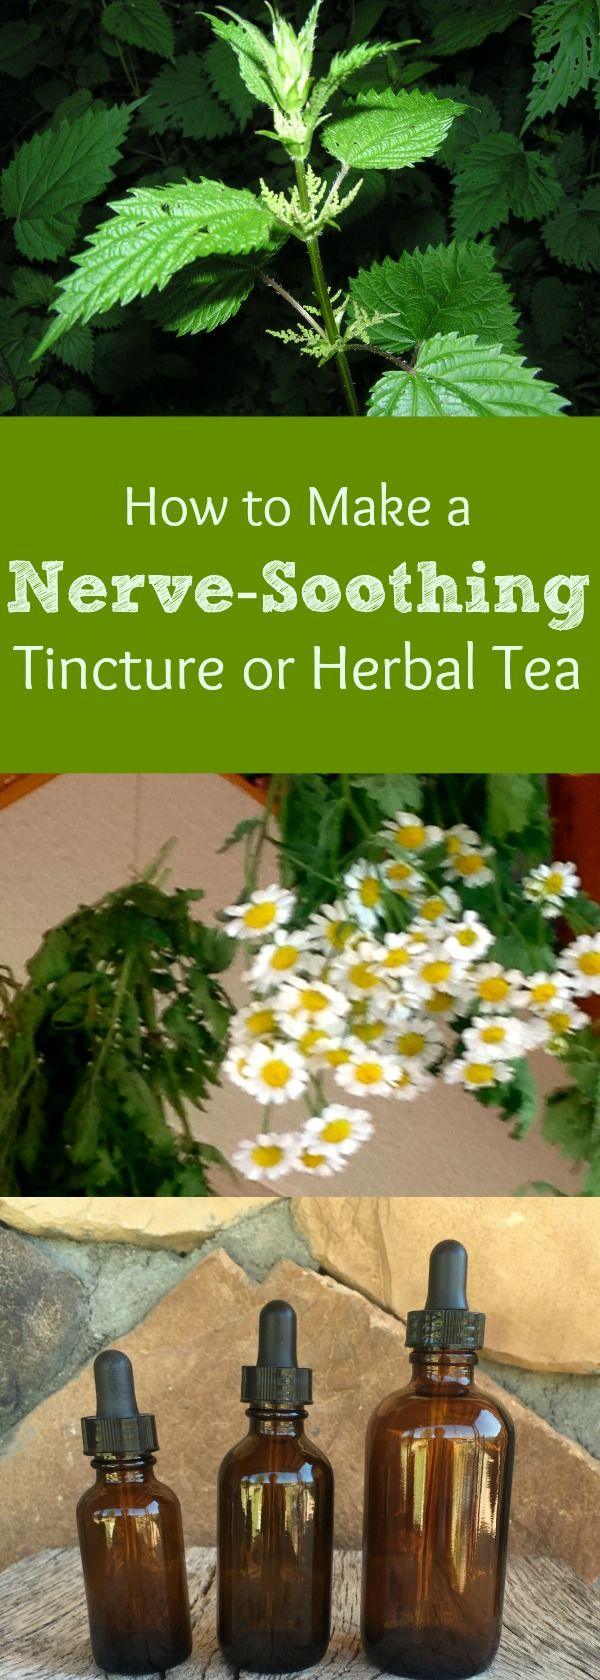 """Ever just had """"one of those days?"""" It seems they happen pretty frequently during this increasingly busy time of year. Here is an easy and effective tincture you can make to soothe your nerves! There are only three herbs in it, and it tastes pretty good, too. In addition, if you happen to be a sufferer of migraine headaches, there is evidence that the herbs in this tincture is thought to help out with those! By the way, this herbal combination also makes an easy delicious tea, if you…"""